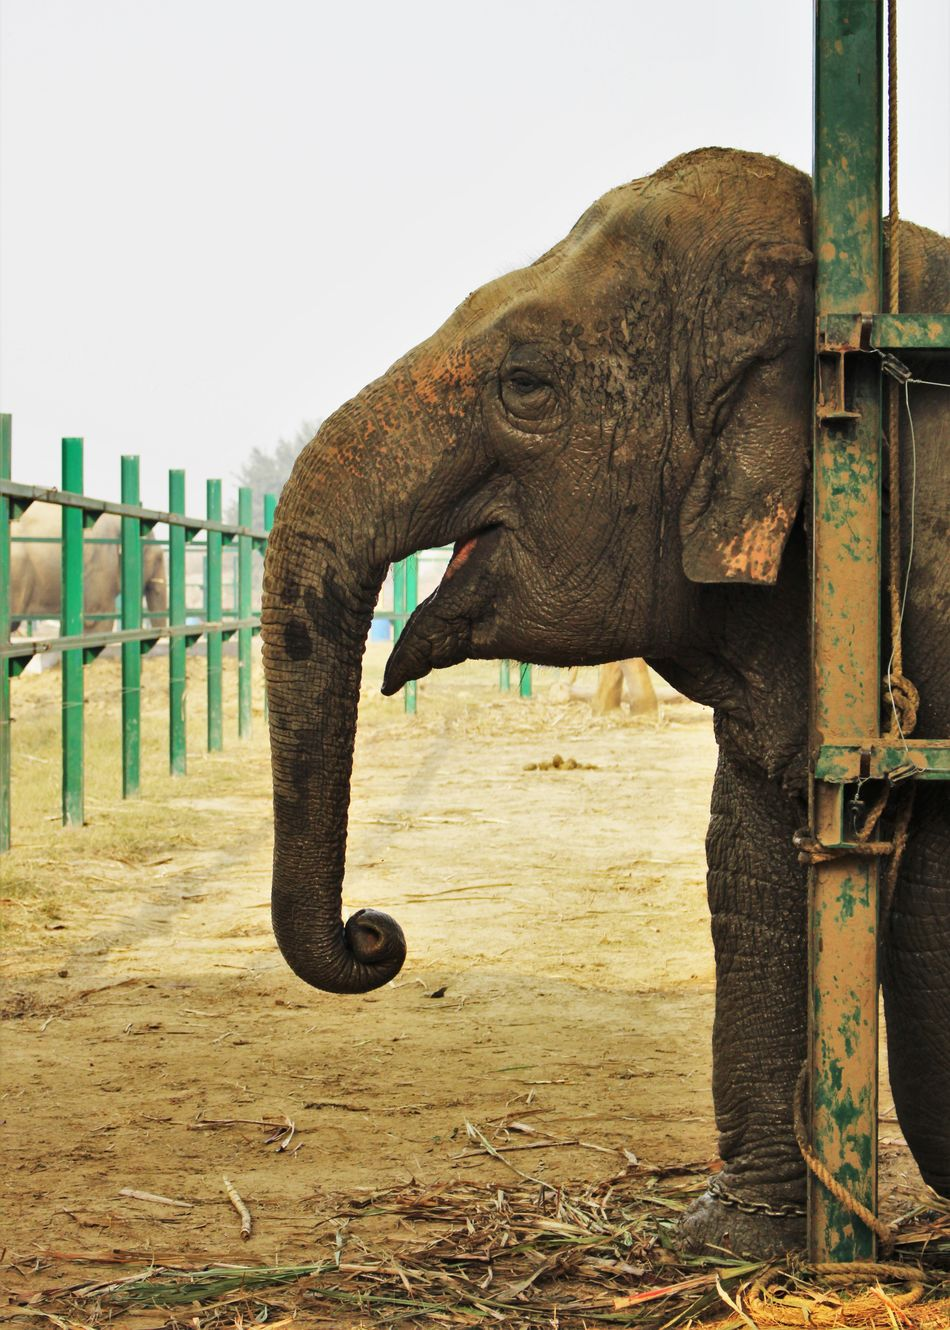 Animal Sanctuary Animal Themes Animal Trunk Day Domestic Animals Elephant India Indian Elephant Mammal Nature No People One Animal Outdoors Rescue Animals Sky